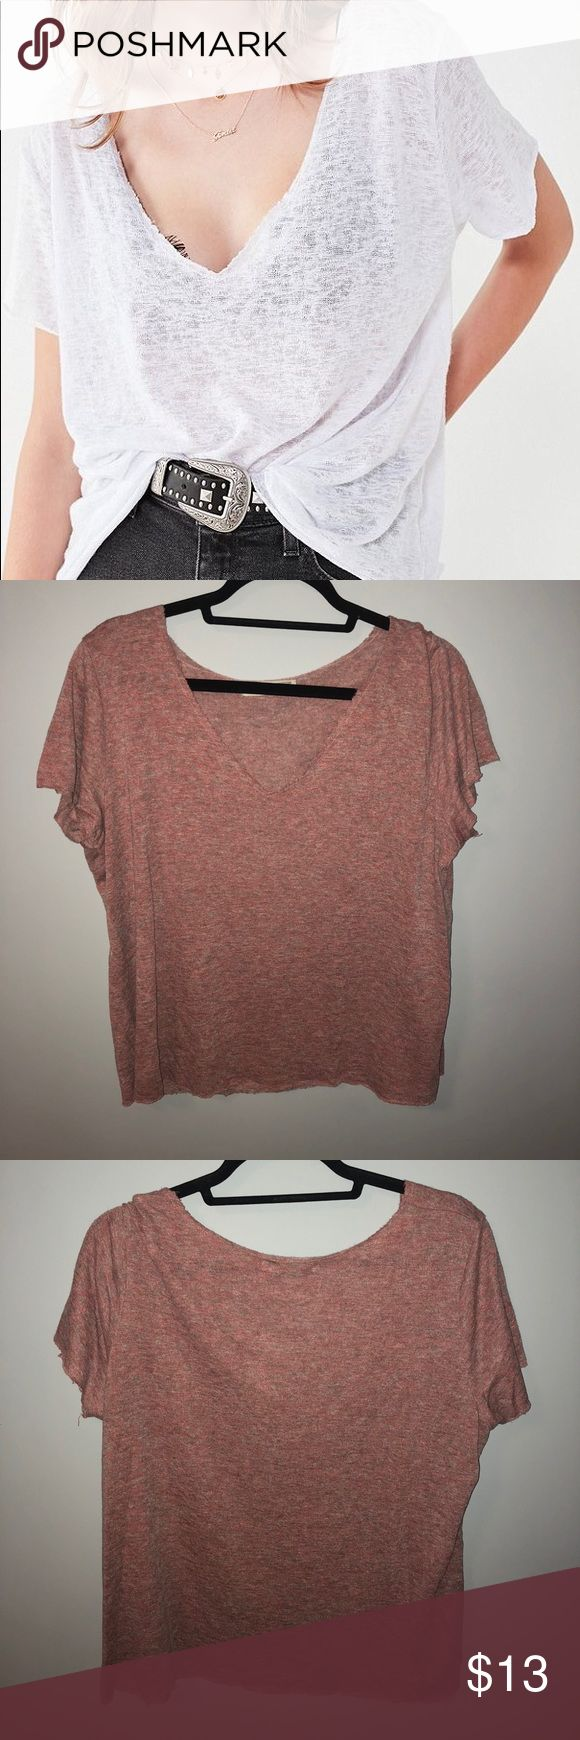 Project Social Tee (IN PINK!!) Cute pink v-neck from Urban Outfitters, lightweight and cute for summer with a bralette:) Urban Outfitters Tops Tees - Short Sleeve